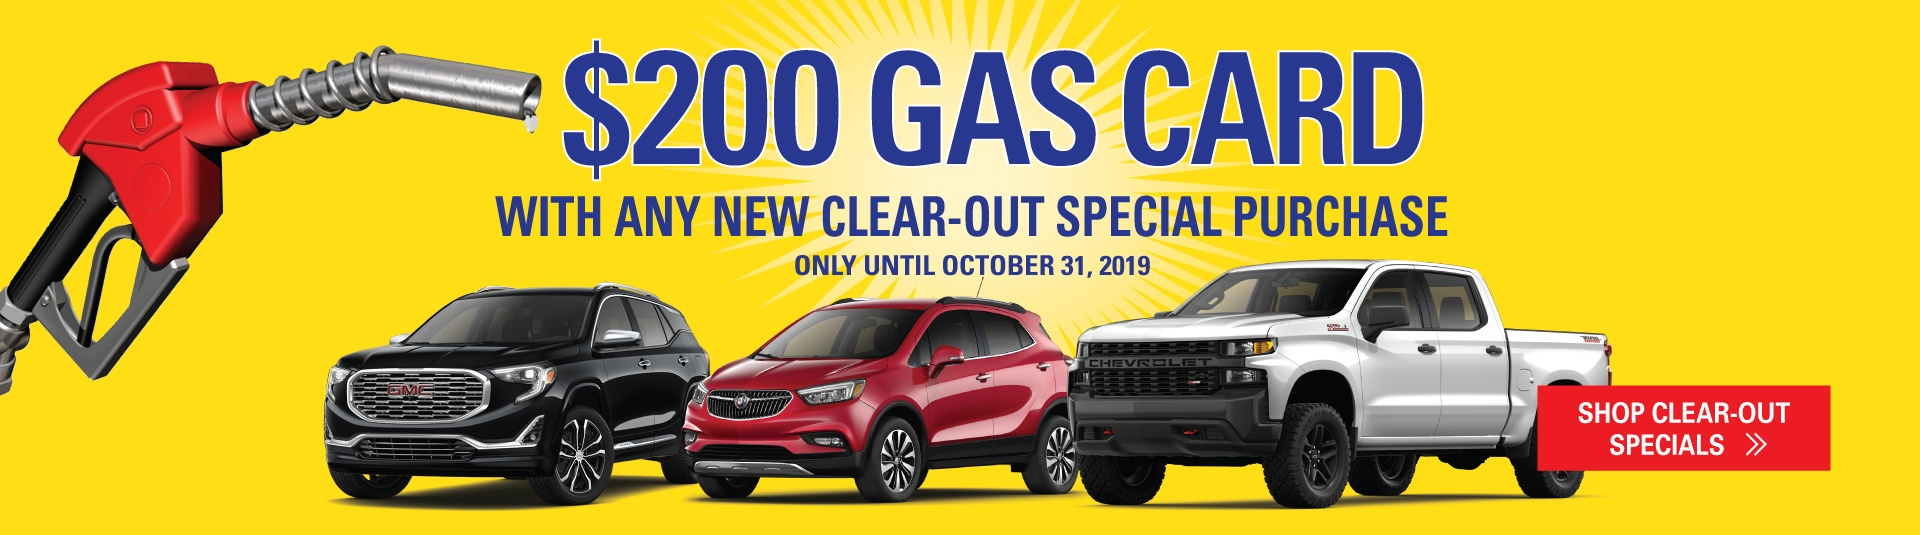 Humberview GM Clearout Specials